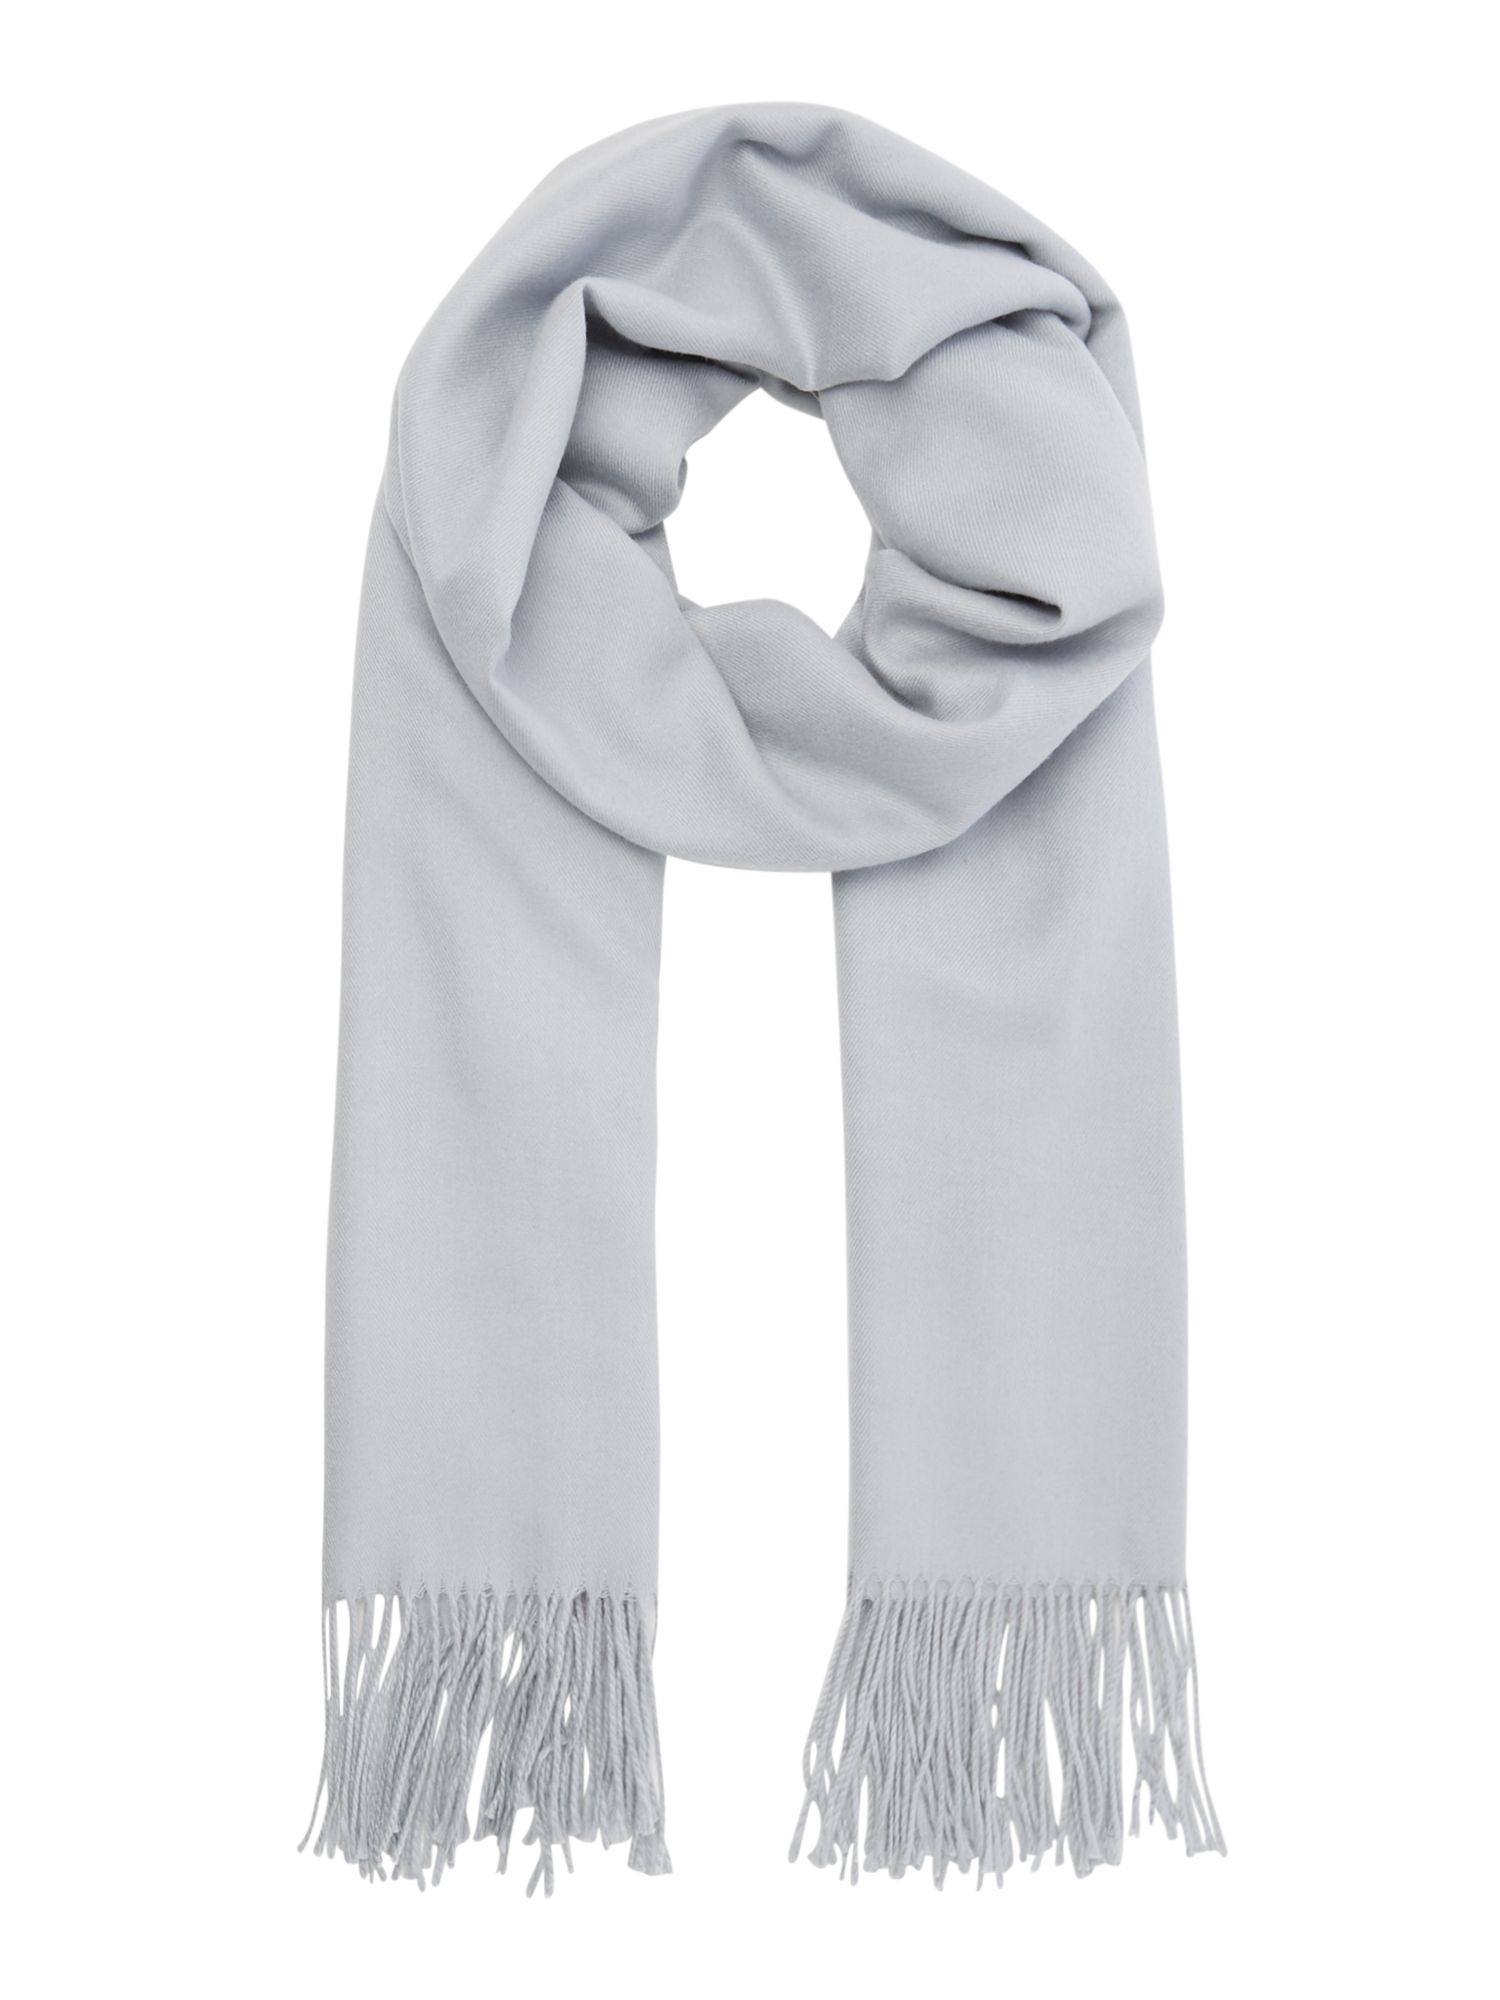 Suzanne Bettley Soft large shawl, Silver Marl